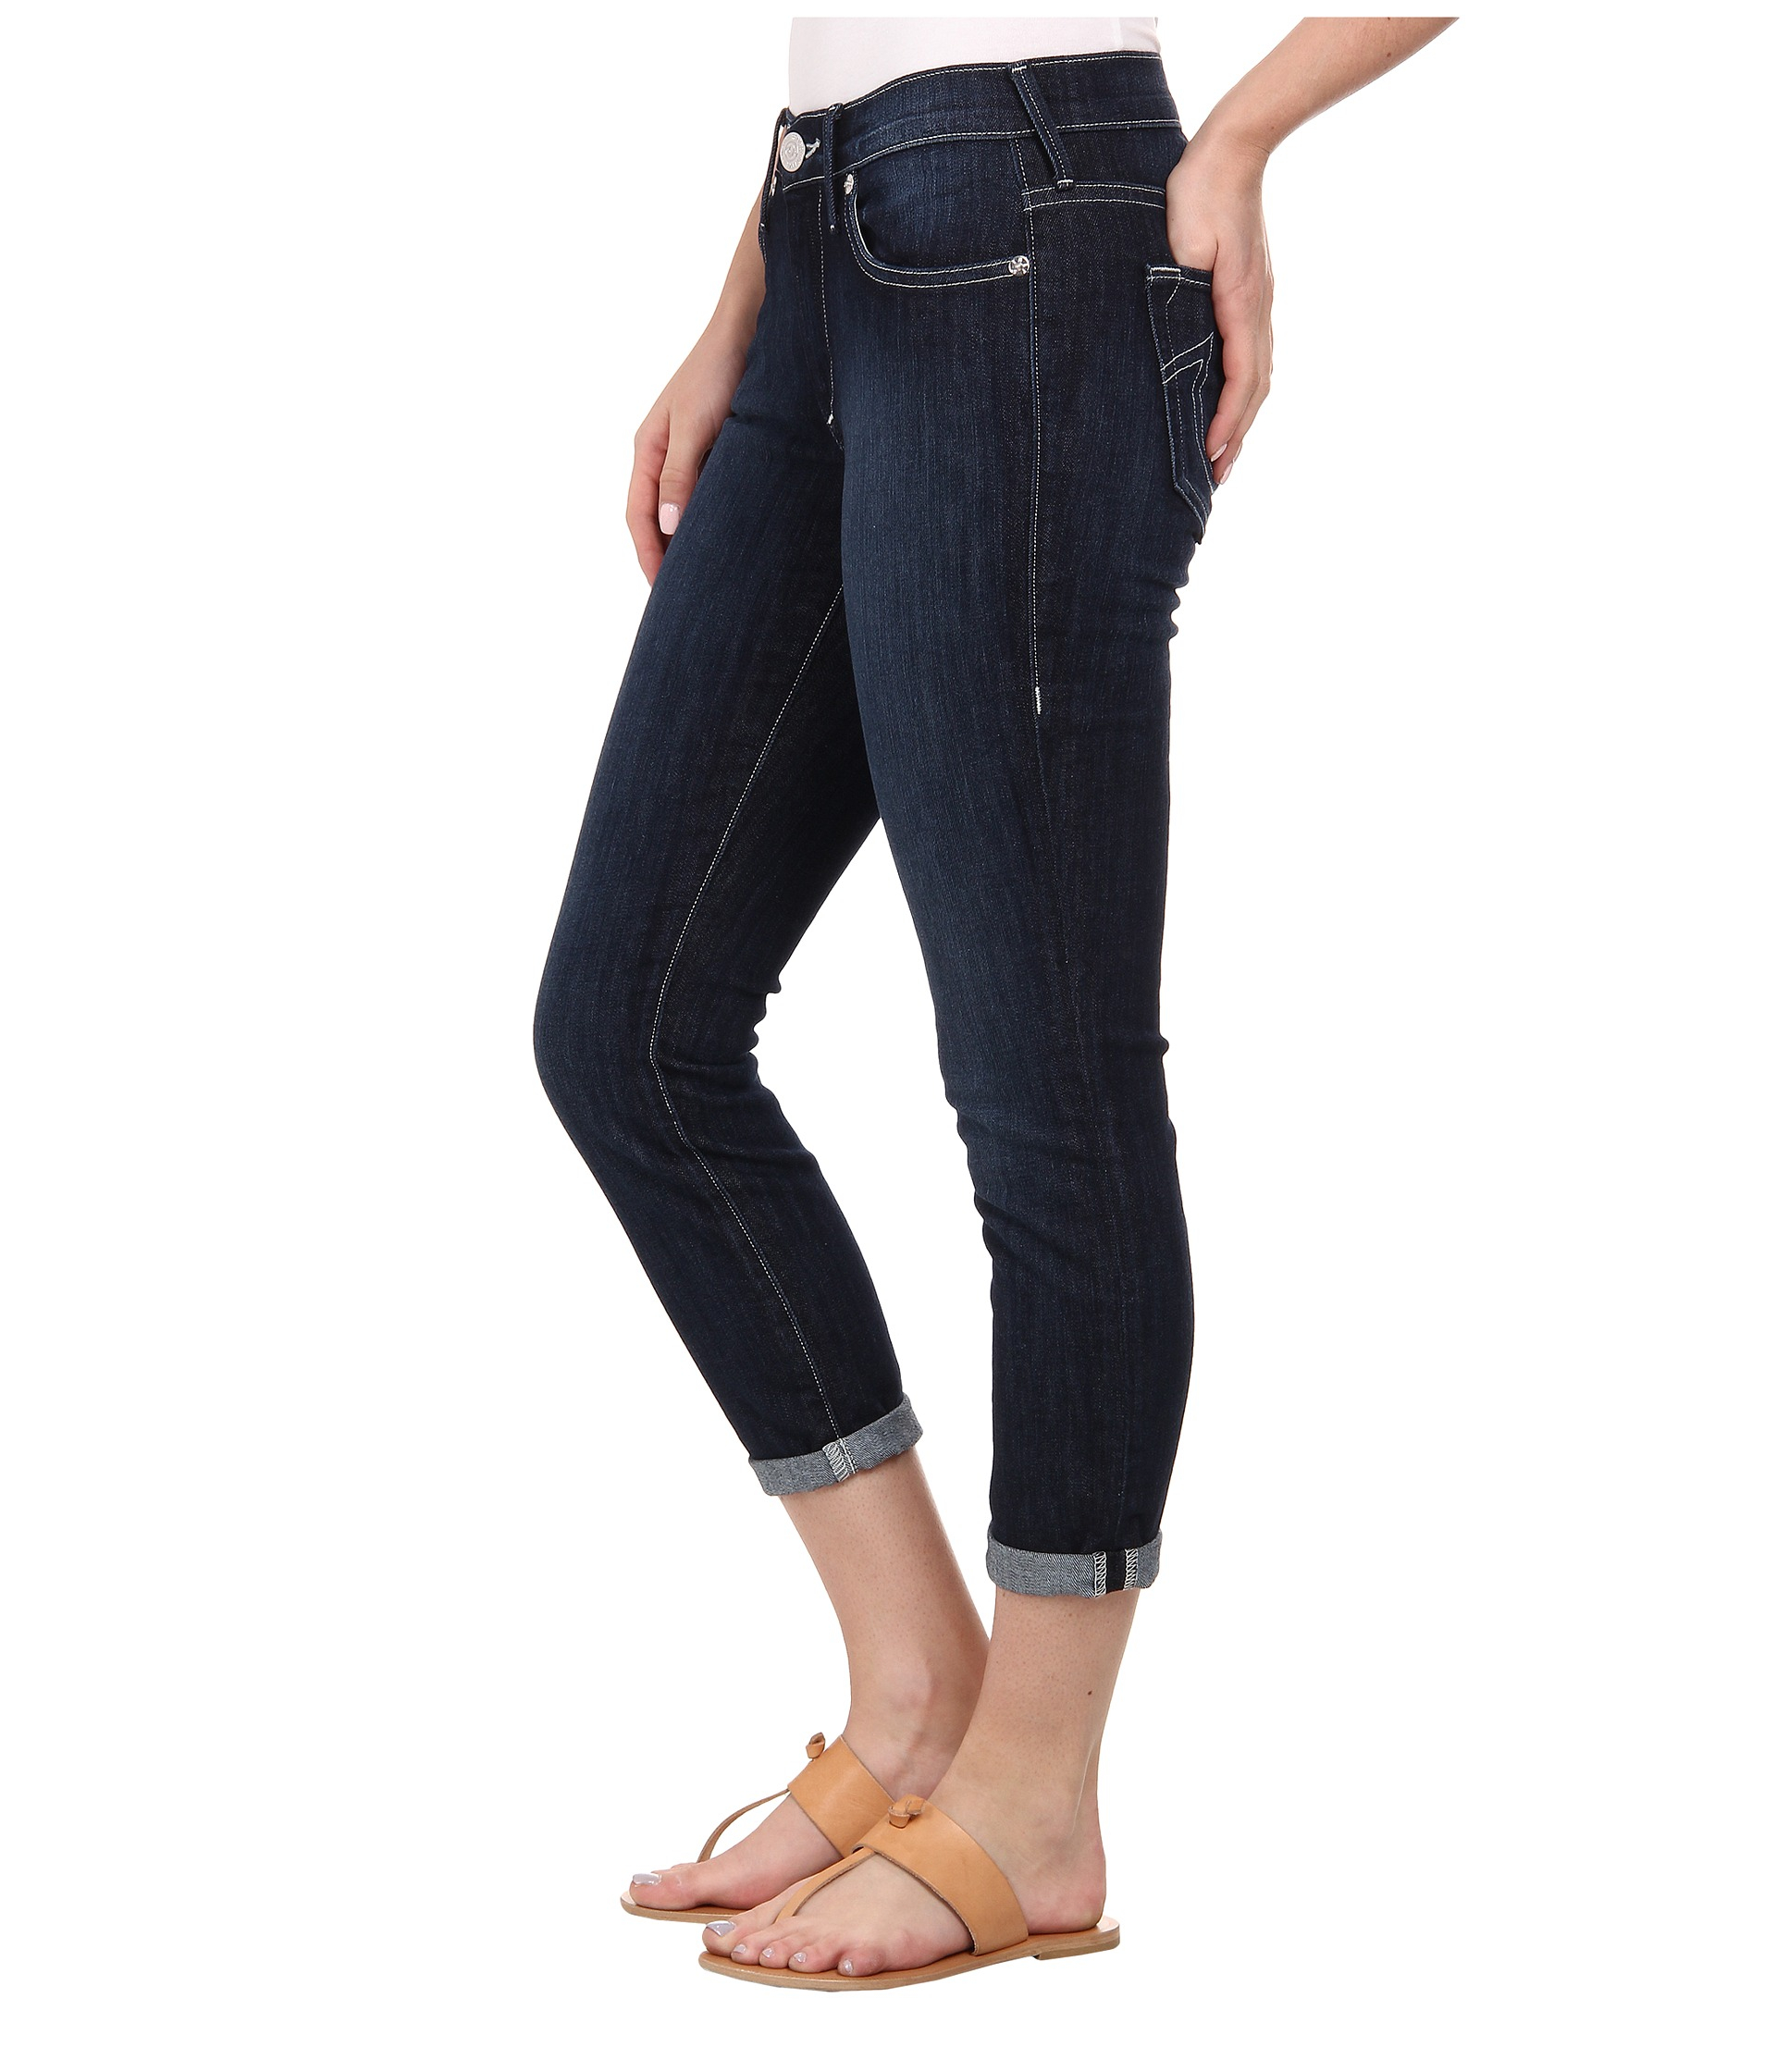 True religion halle skinny cropped jeans